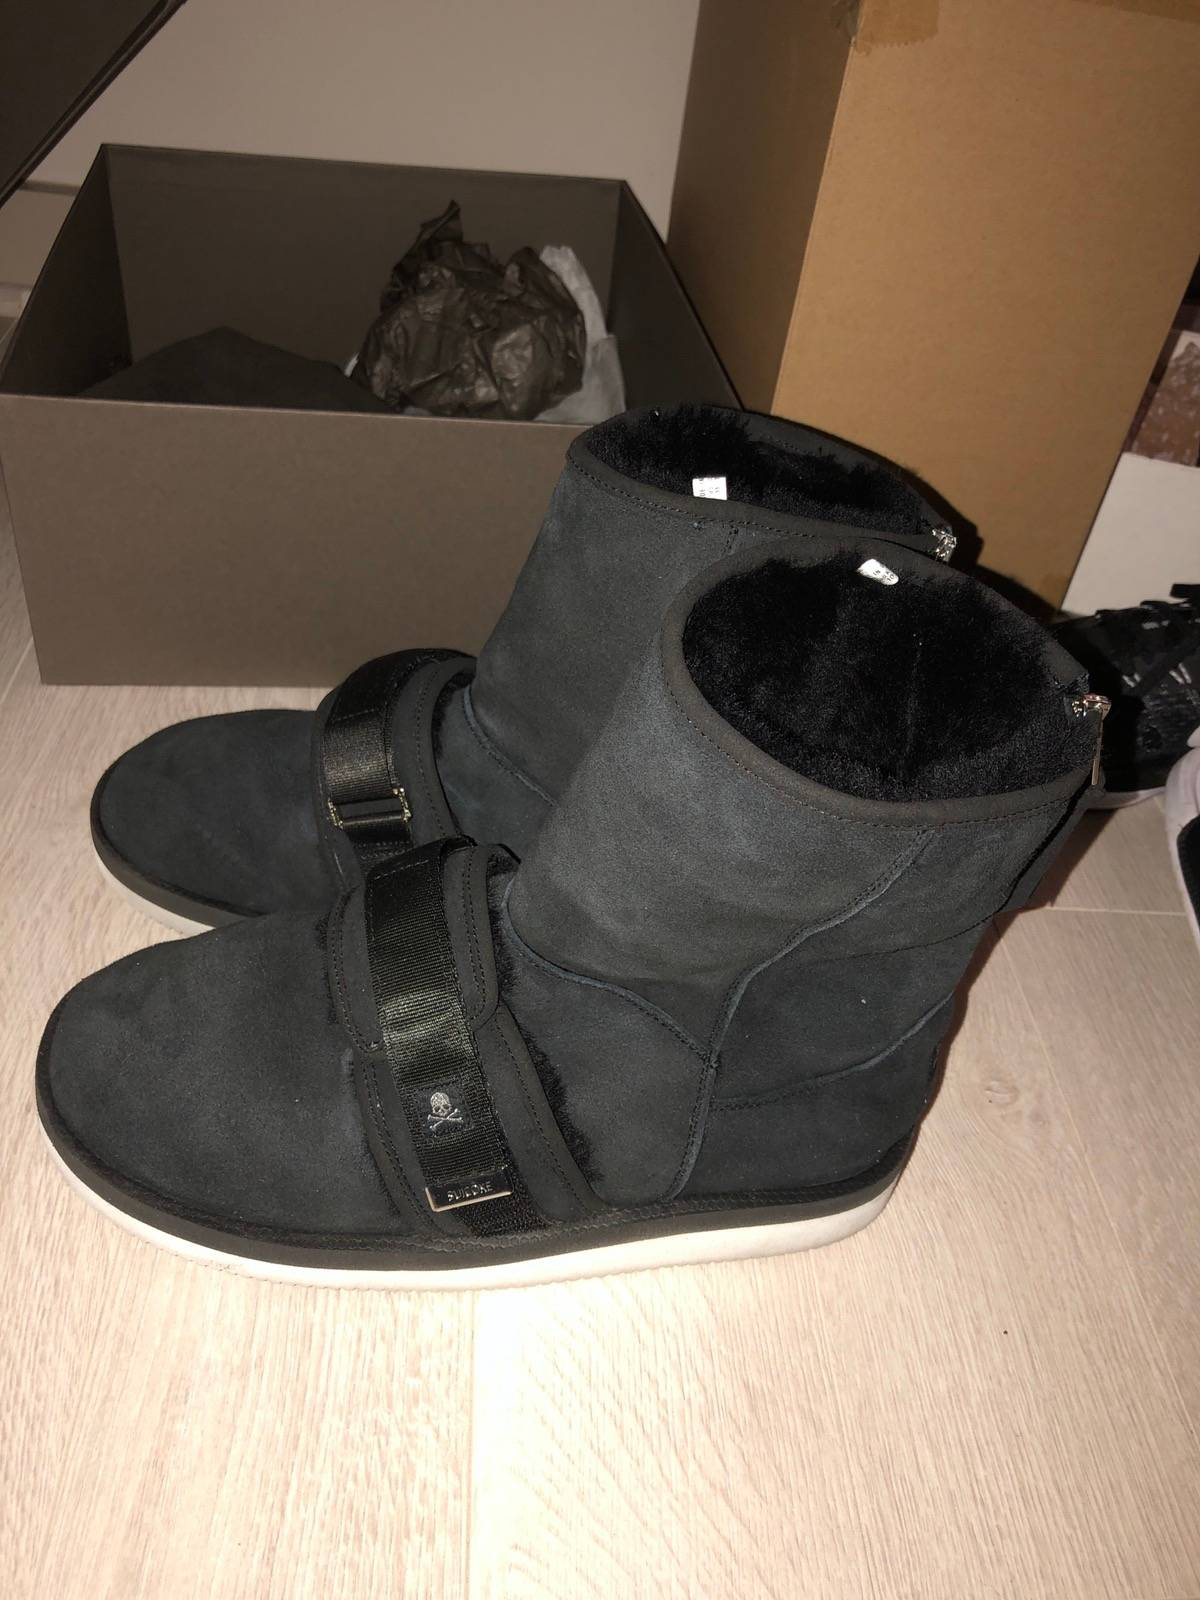 261c9e13cdd6 Mastermind Japan Mastermind World x Suicoke ELS-VM2 Boot Size 11 - Boots  for Sale - Grailed